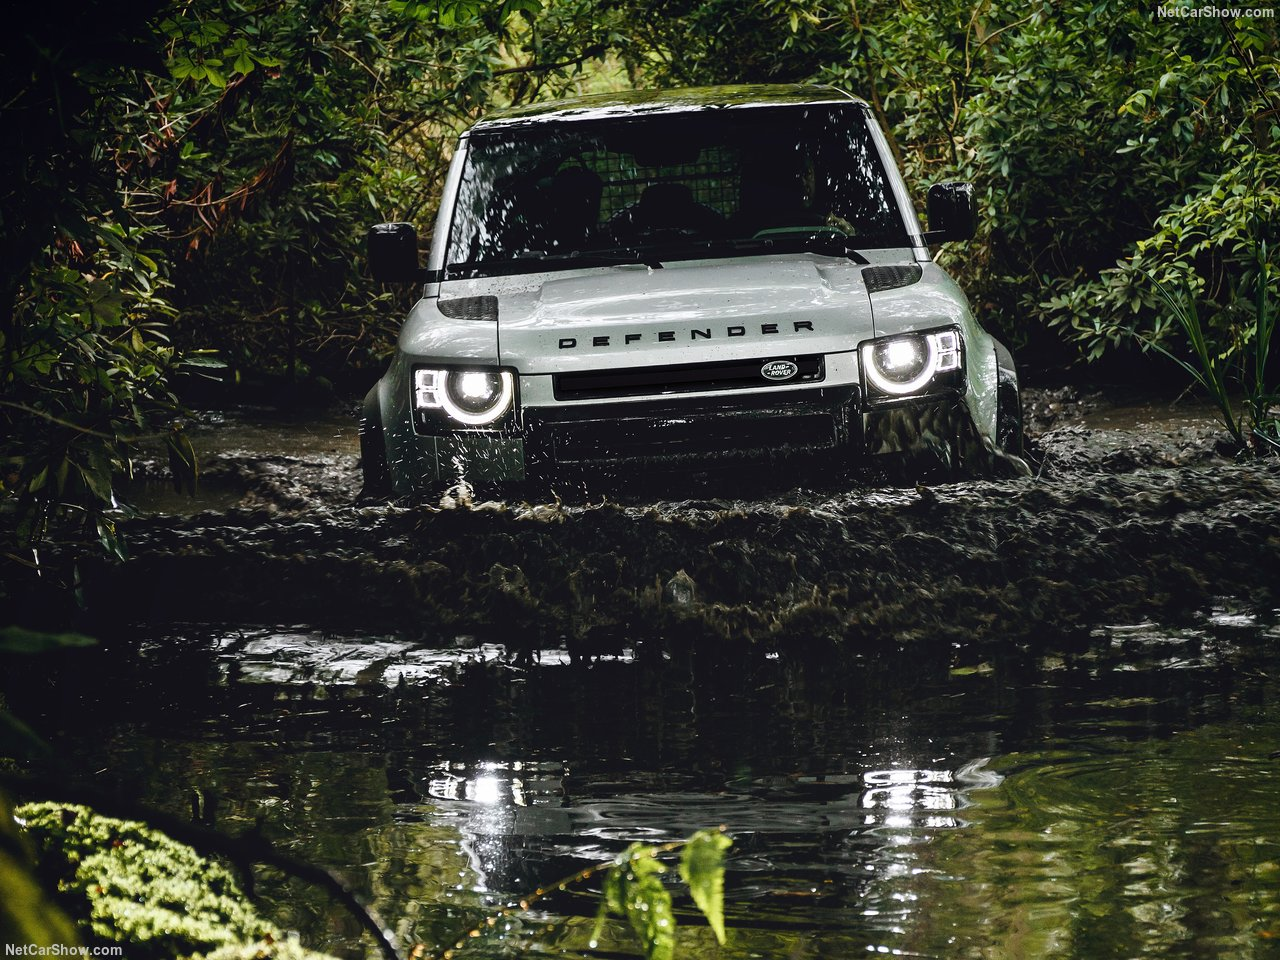 Land_Rover-Defender_110-2020-1280-5b_20200404211848123.jpg